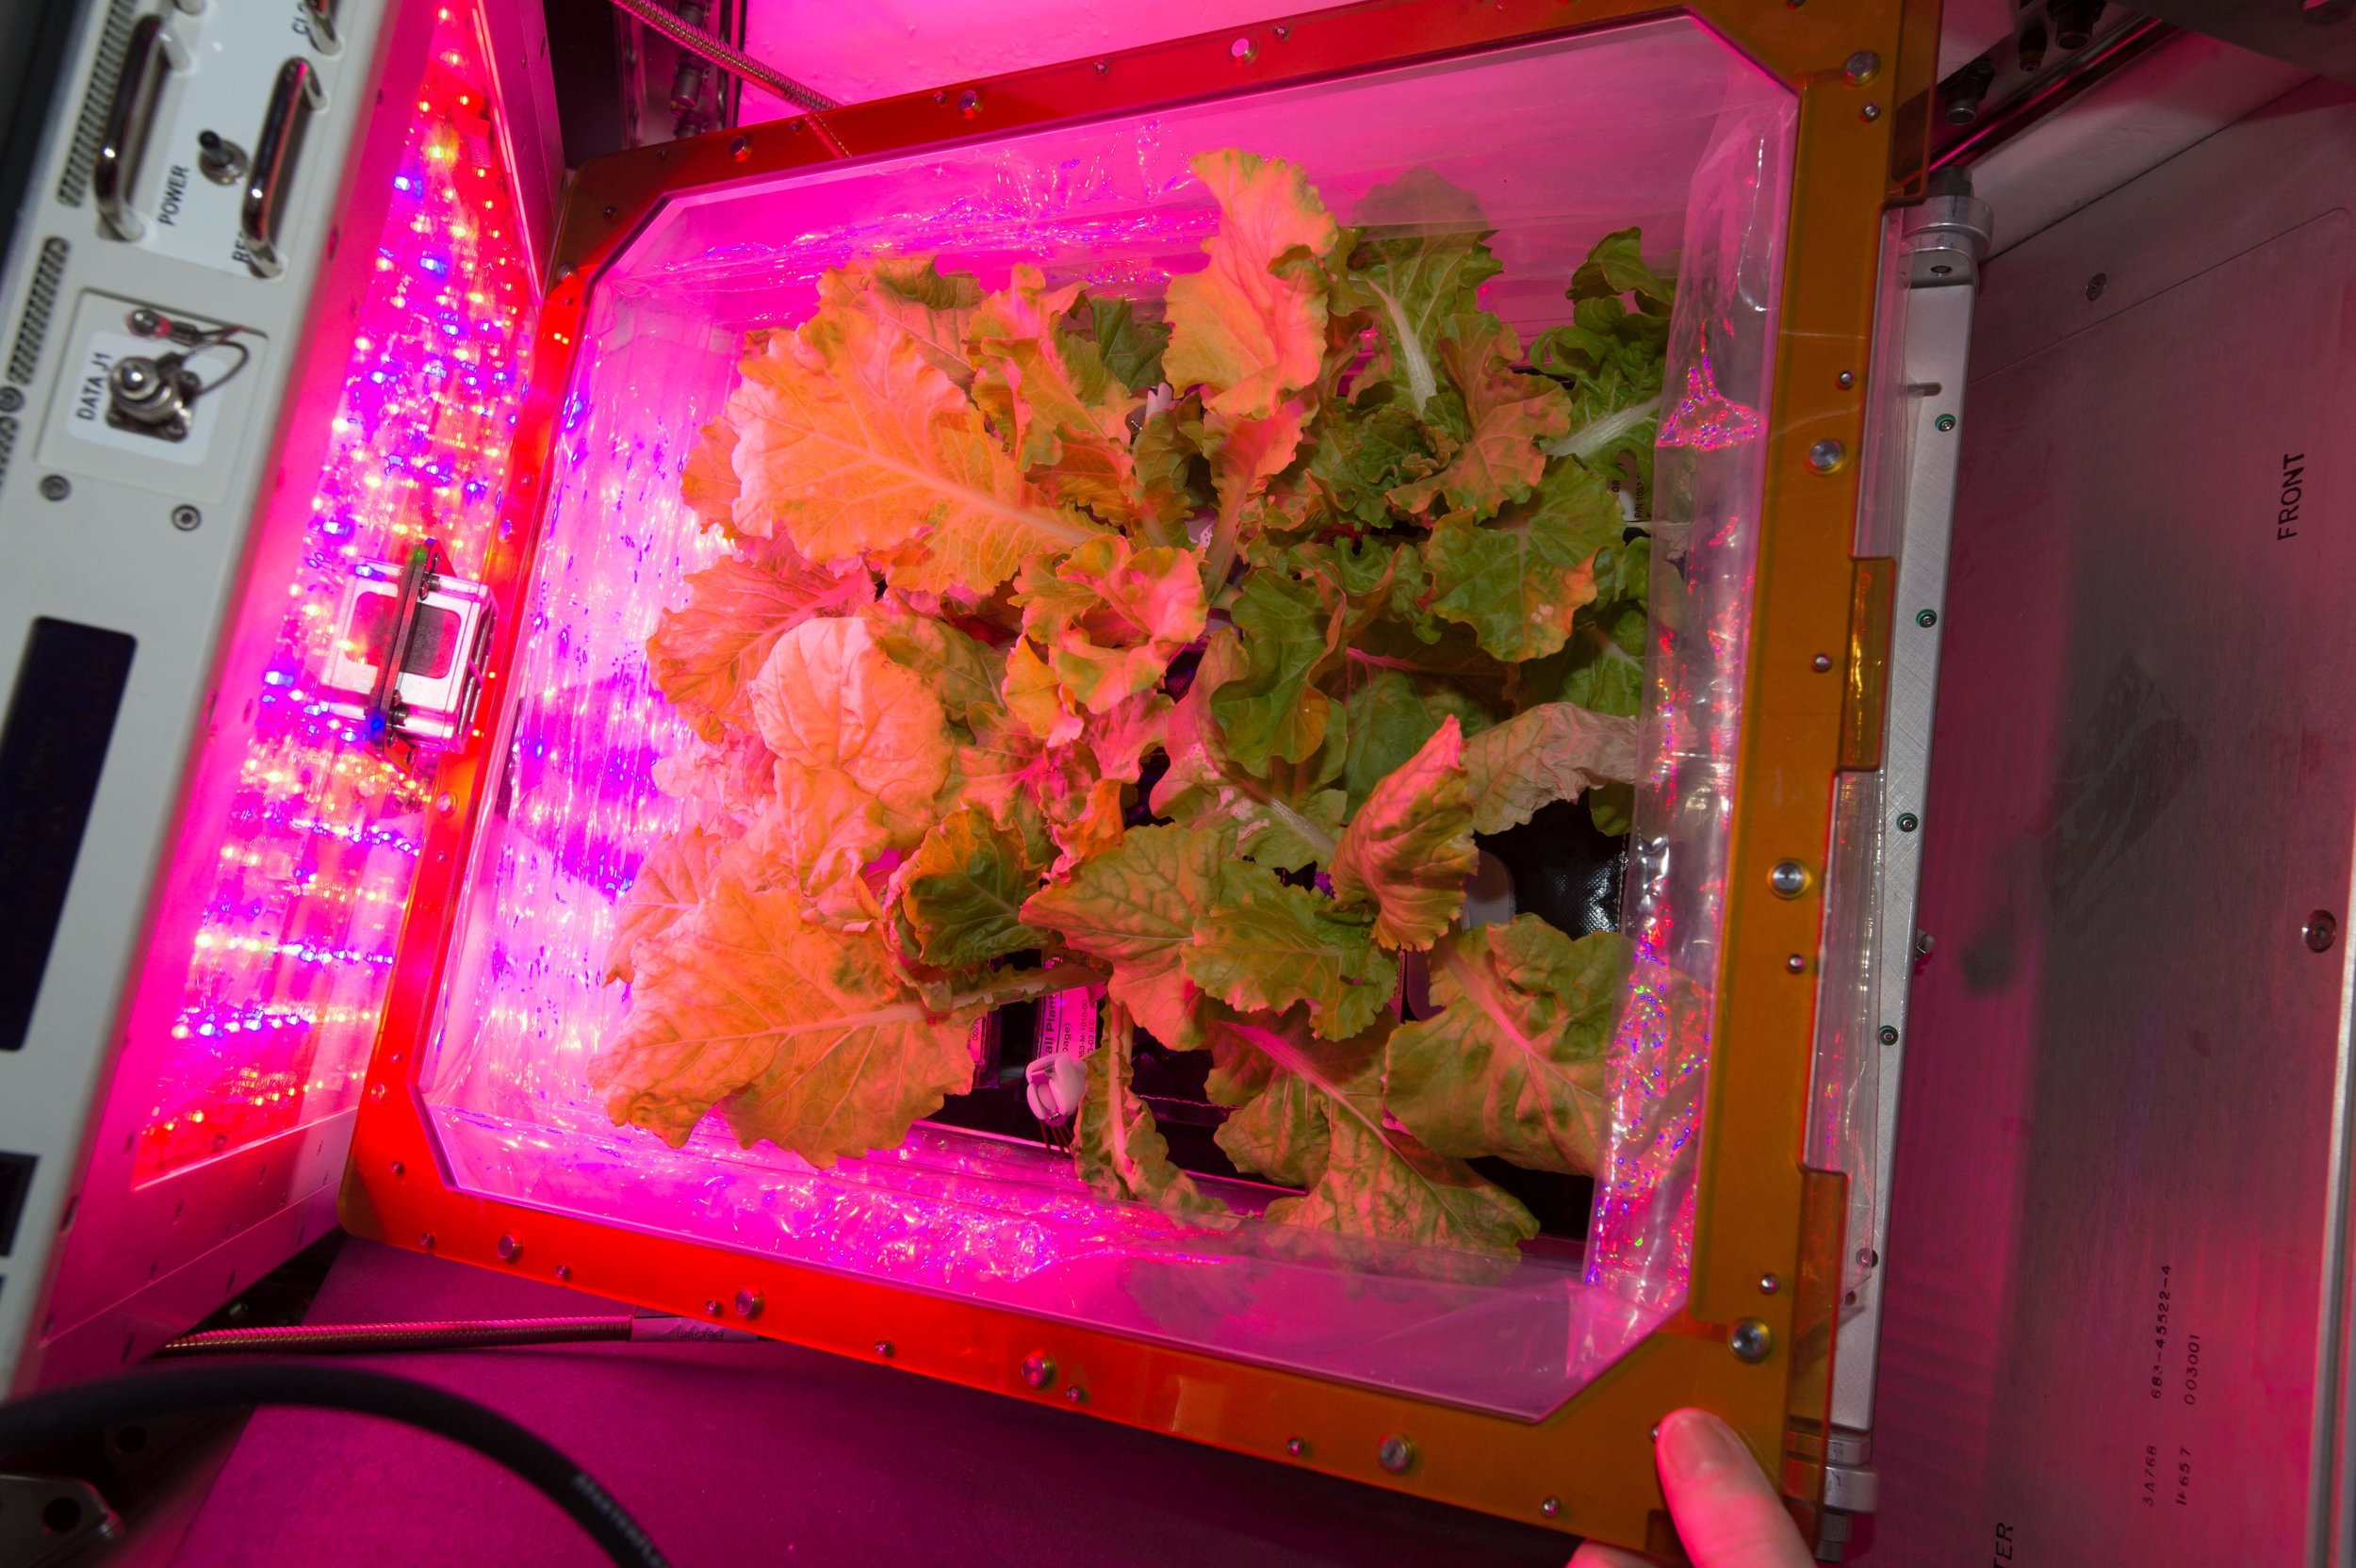 An example of the Chinese cabbage grown during the Veg-03 B and C tests on the ISS. Credit: NASA.